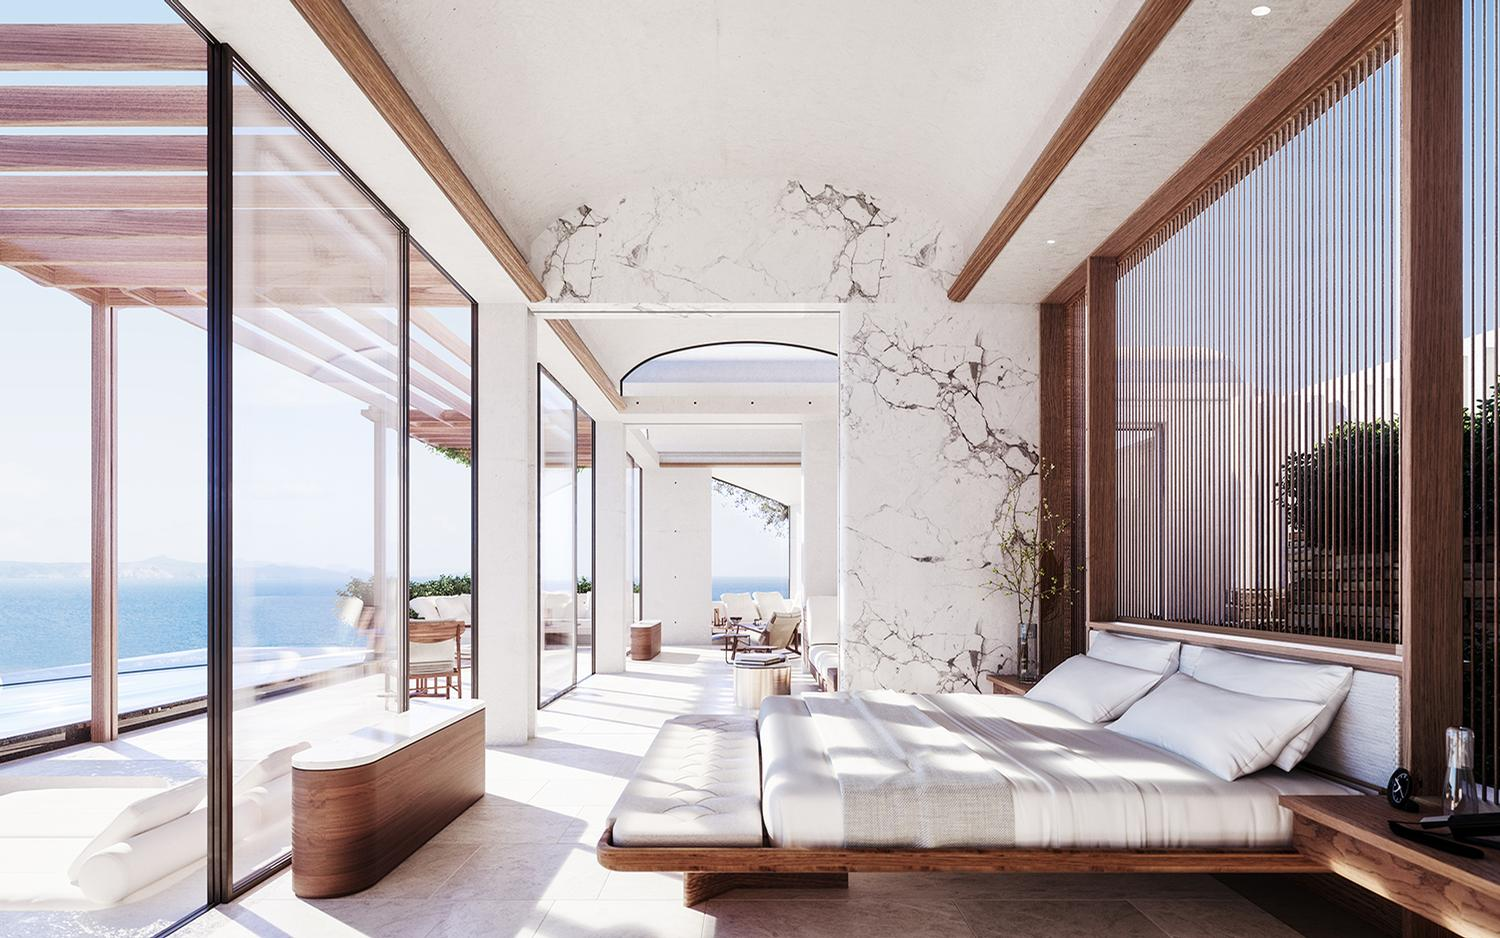 Designed with a contemporary Greek elegance by Heah&Co., the resort will celebrate the natural setting of the Cyclades